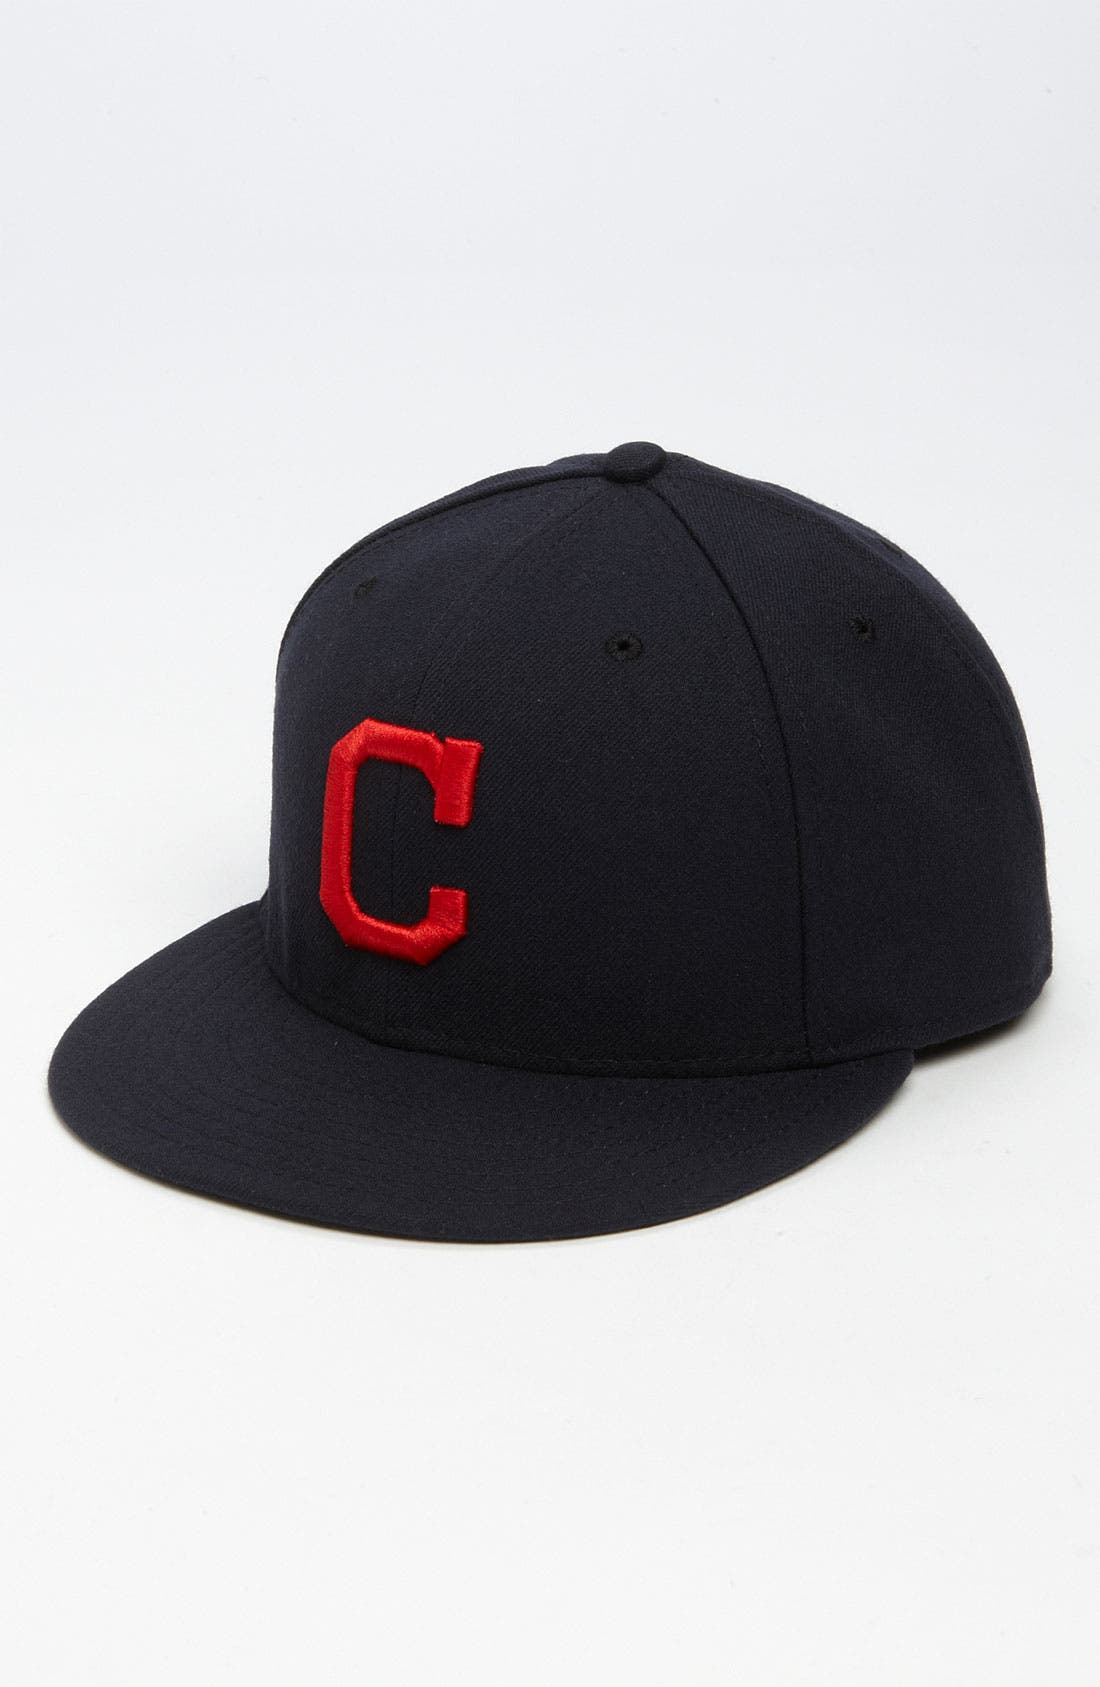 Alternate Image 1 Selected - New Era Cap 'Cleveland Indians' Baseball Cap